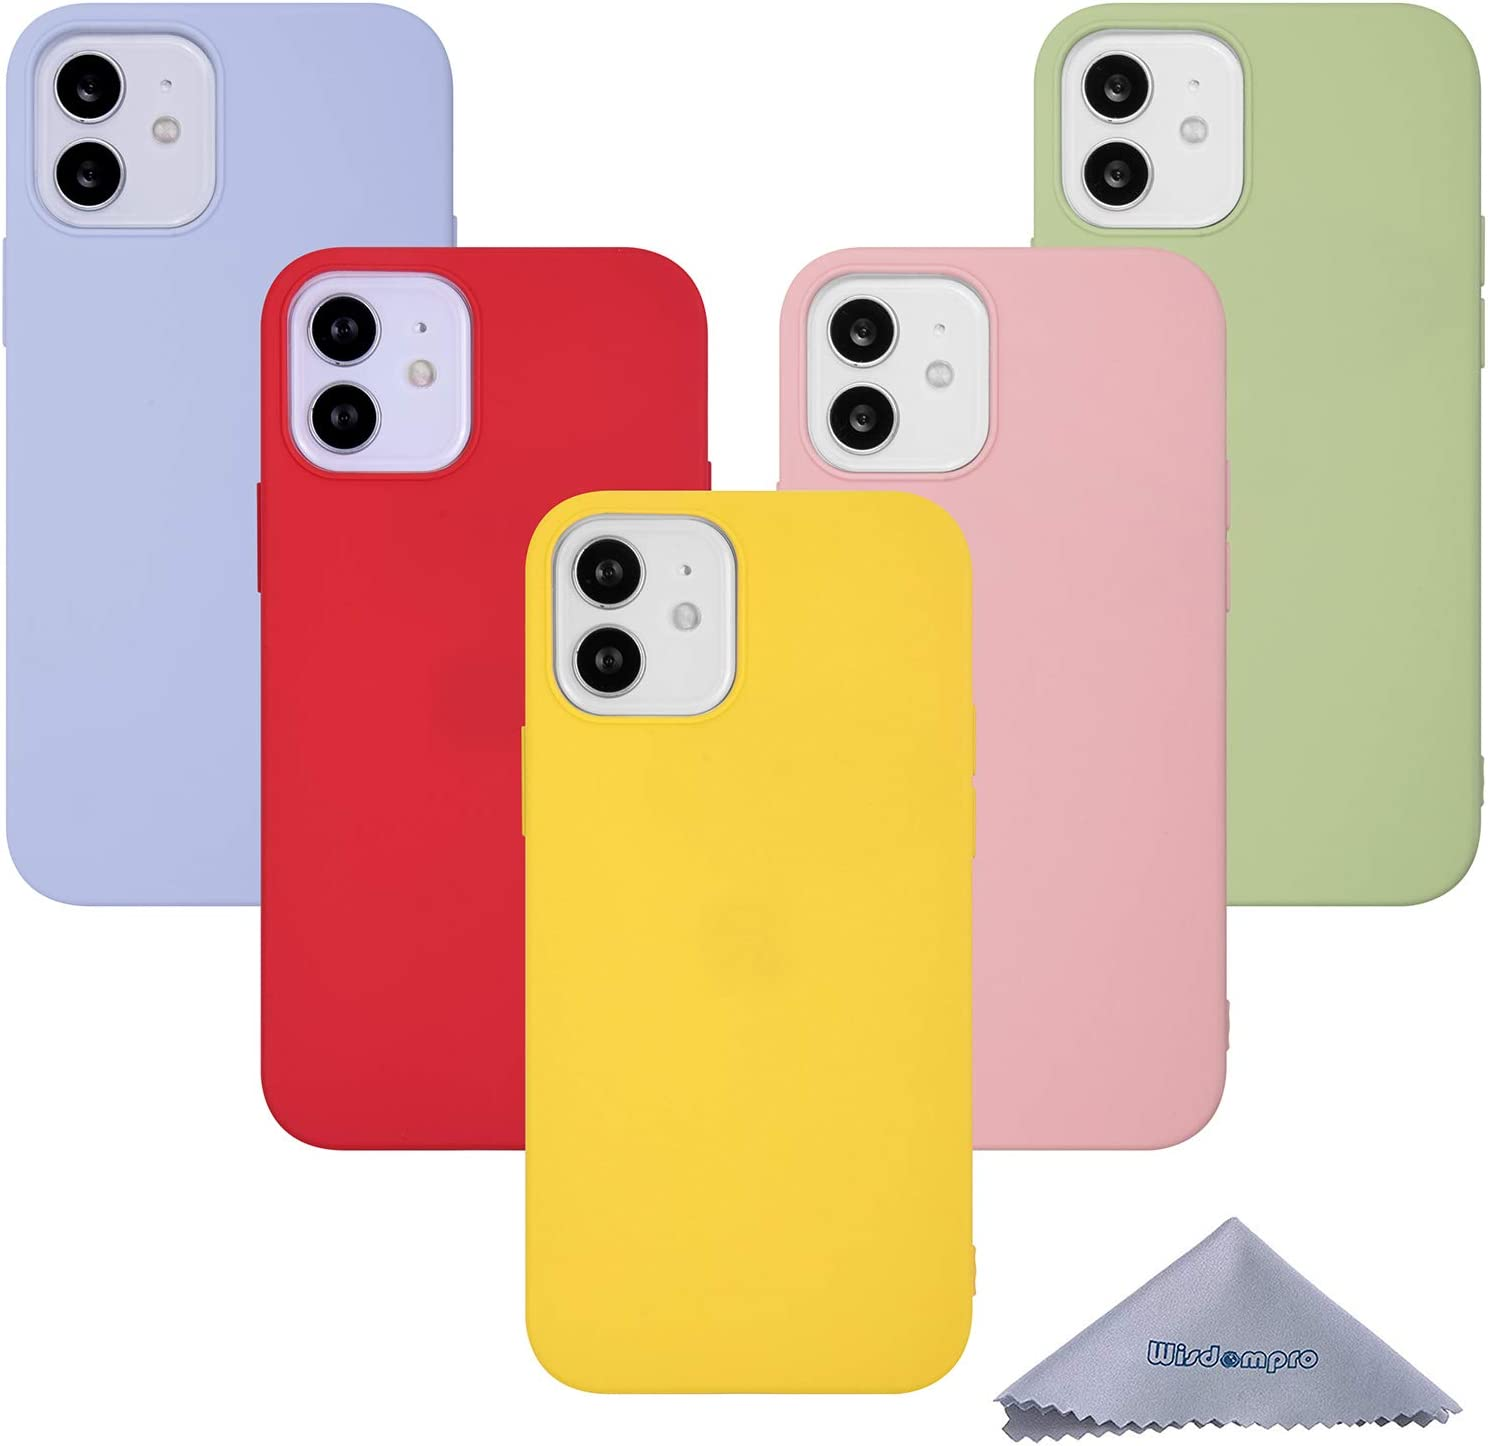 iPhone 12 Mini Case, Wisdompro Bundle of 5 Pack Extra Thin Slim Soft TPU Gel Protective Case Cover for 5.4 Inches Apple iPhone 12 Mini (Green, Light Blue, Pink, Yellow, Red)